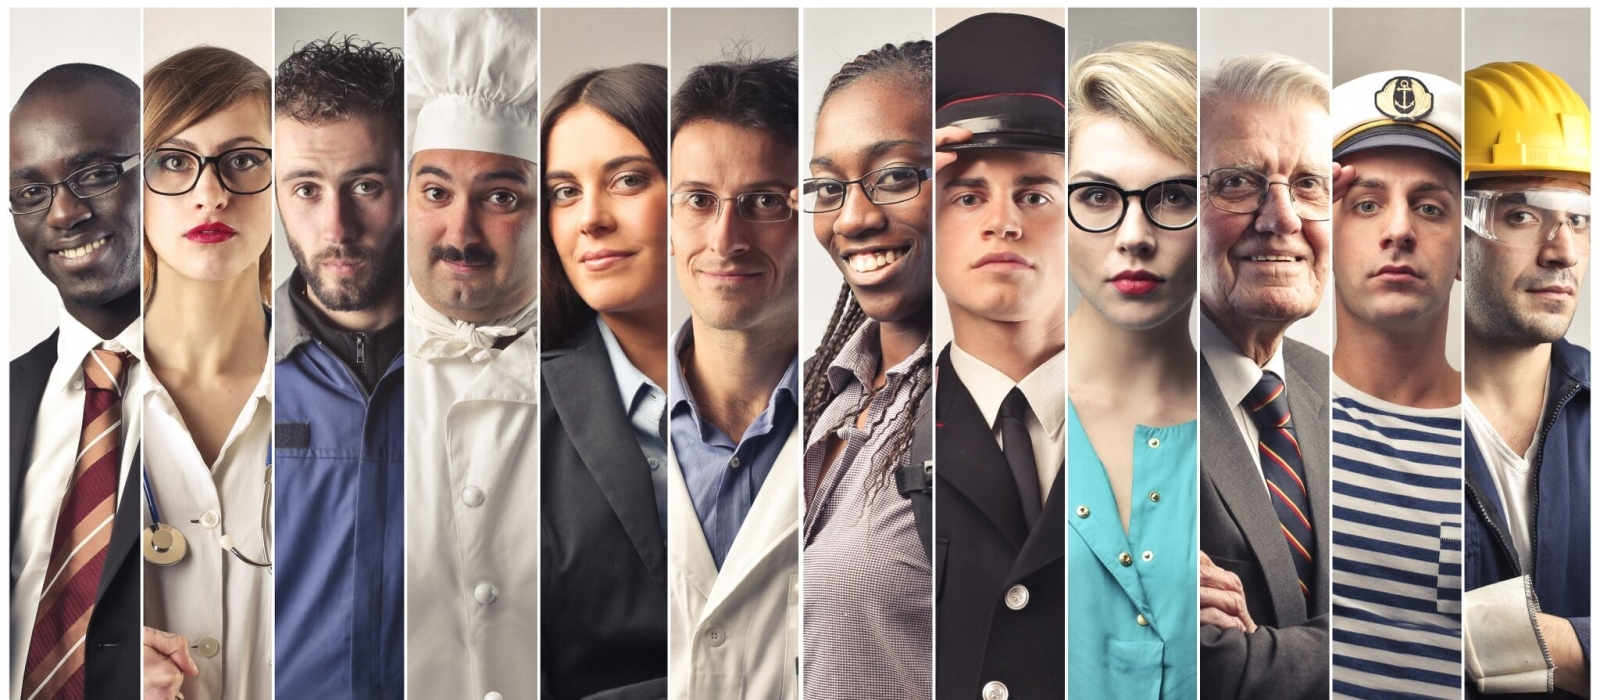 A horizontal collage of diverse people representing many different professions, including business person, doctor, chef, pilot etc.